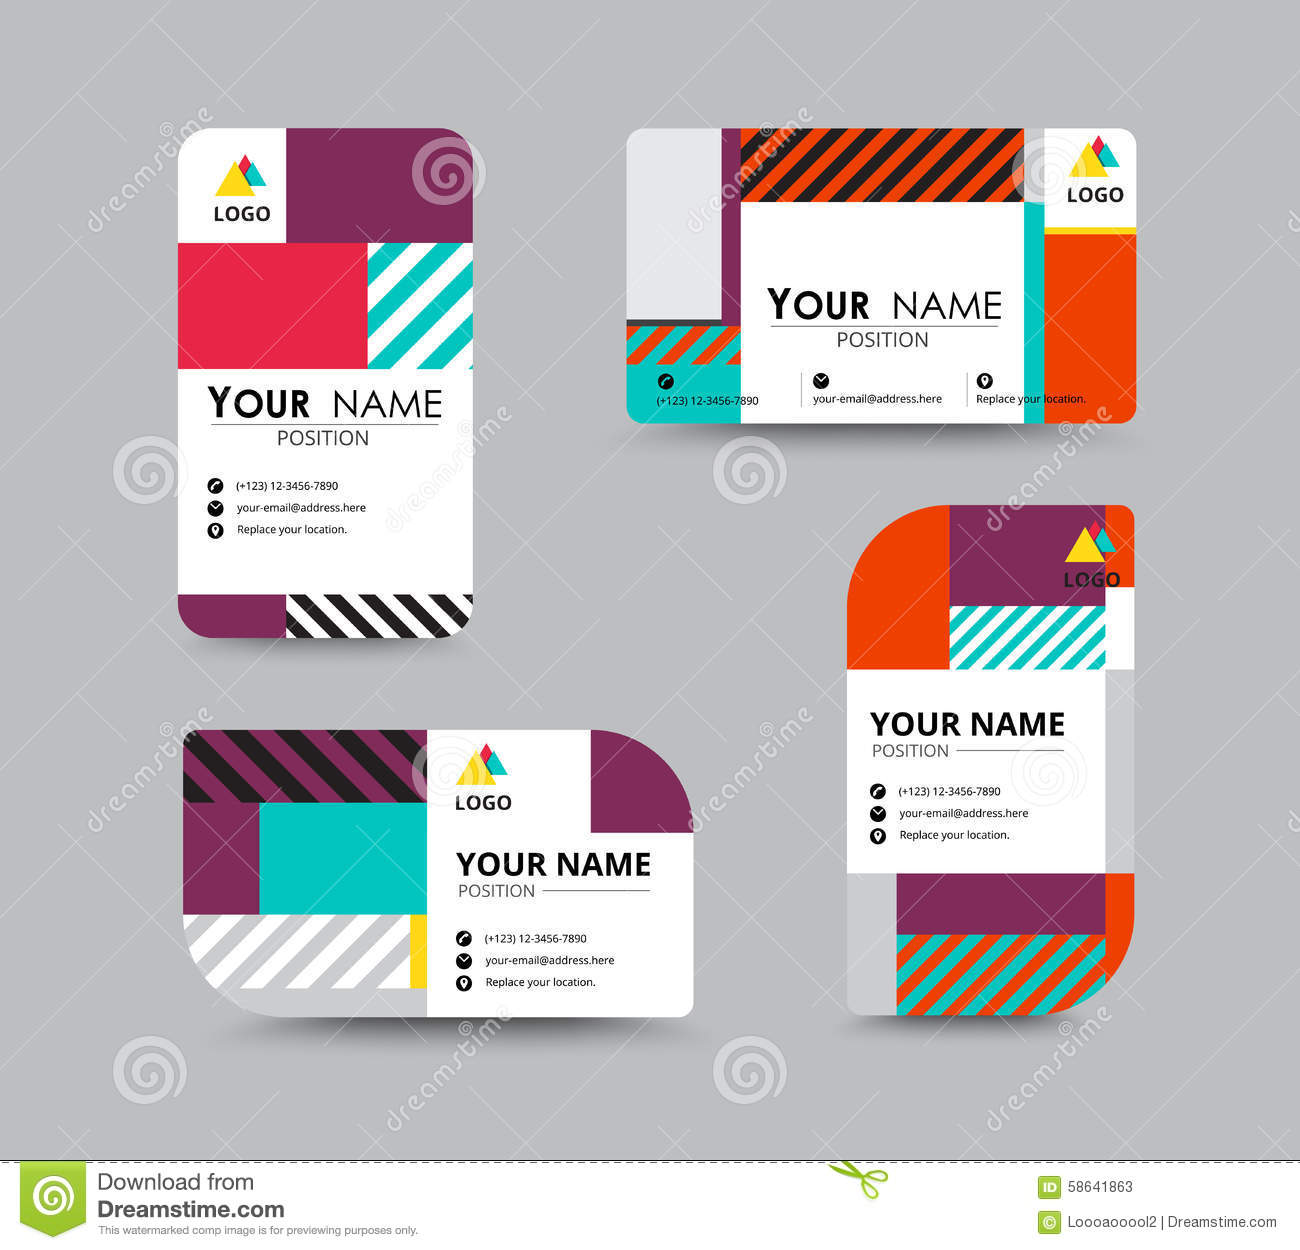 Modern Business Card And Name Card Design Vector Image – Sample of Name Card